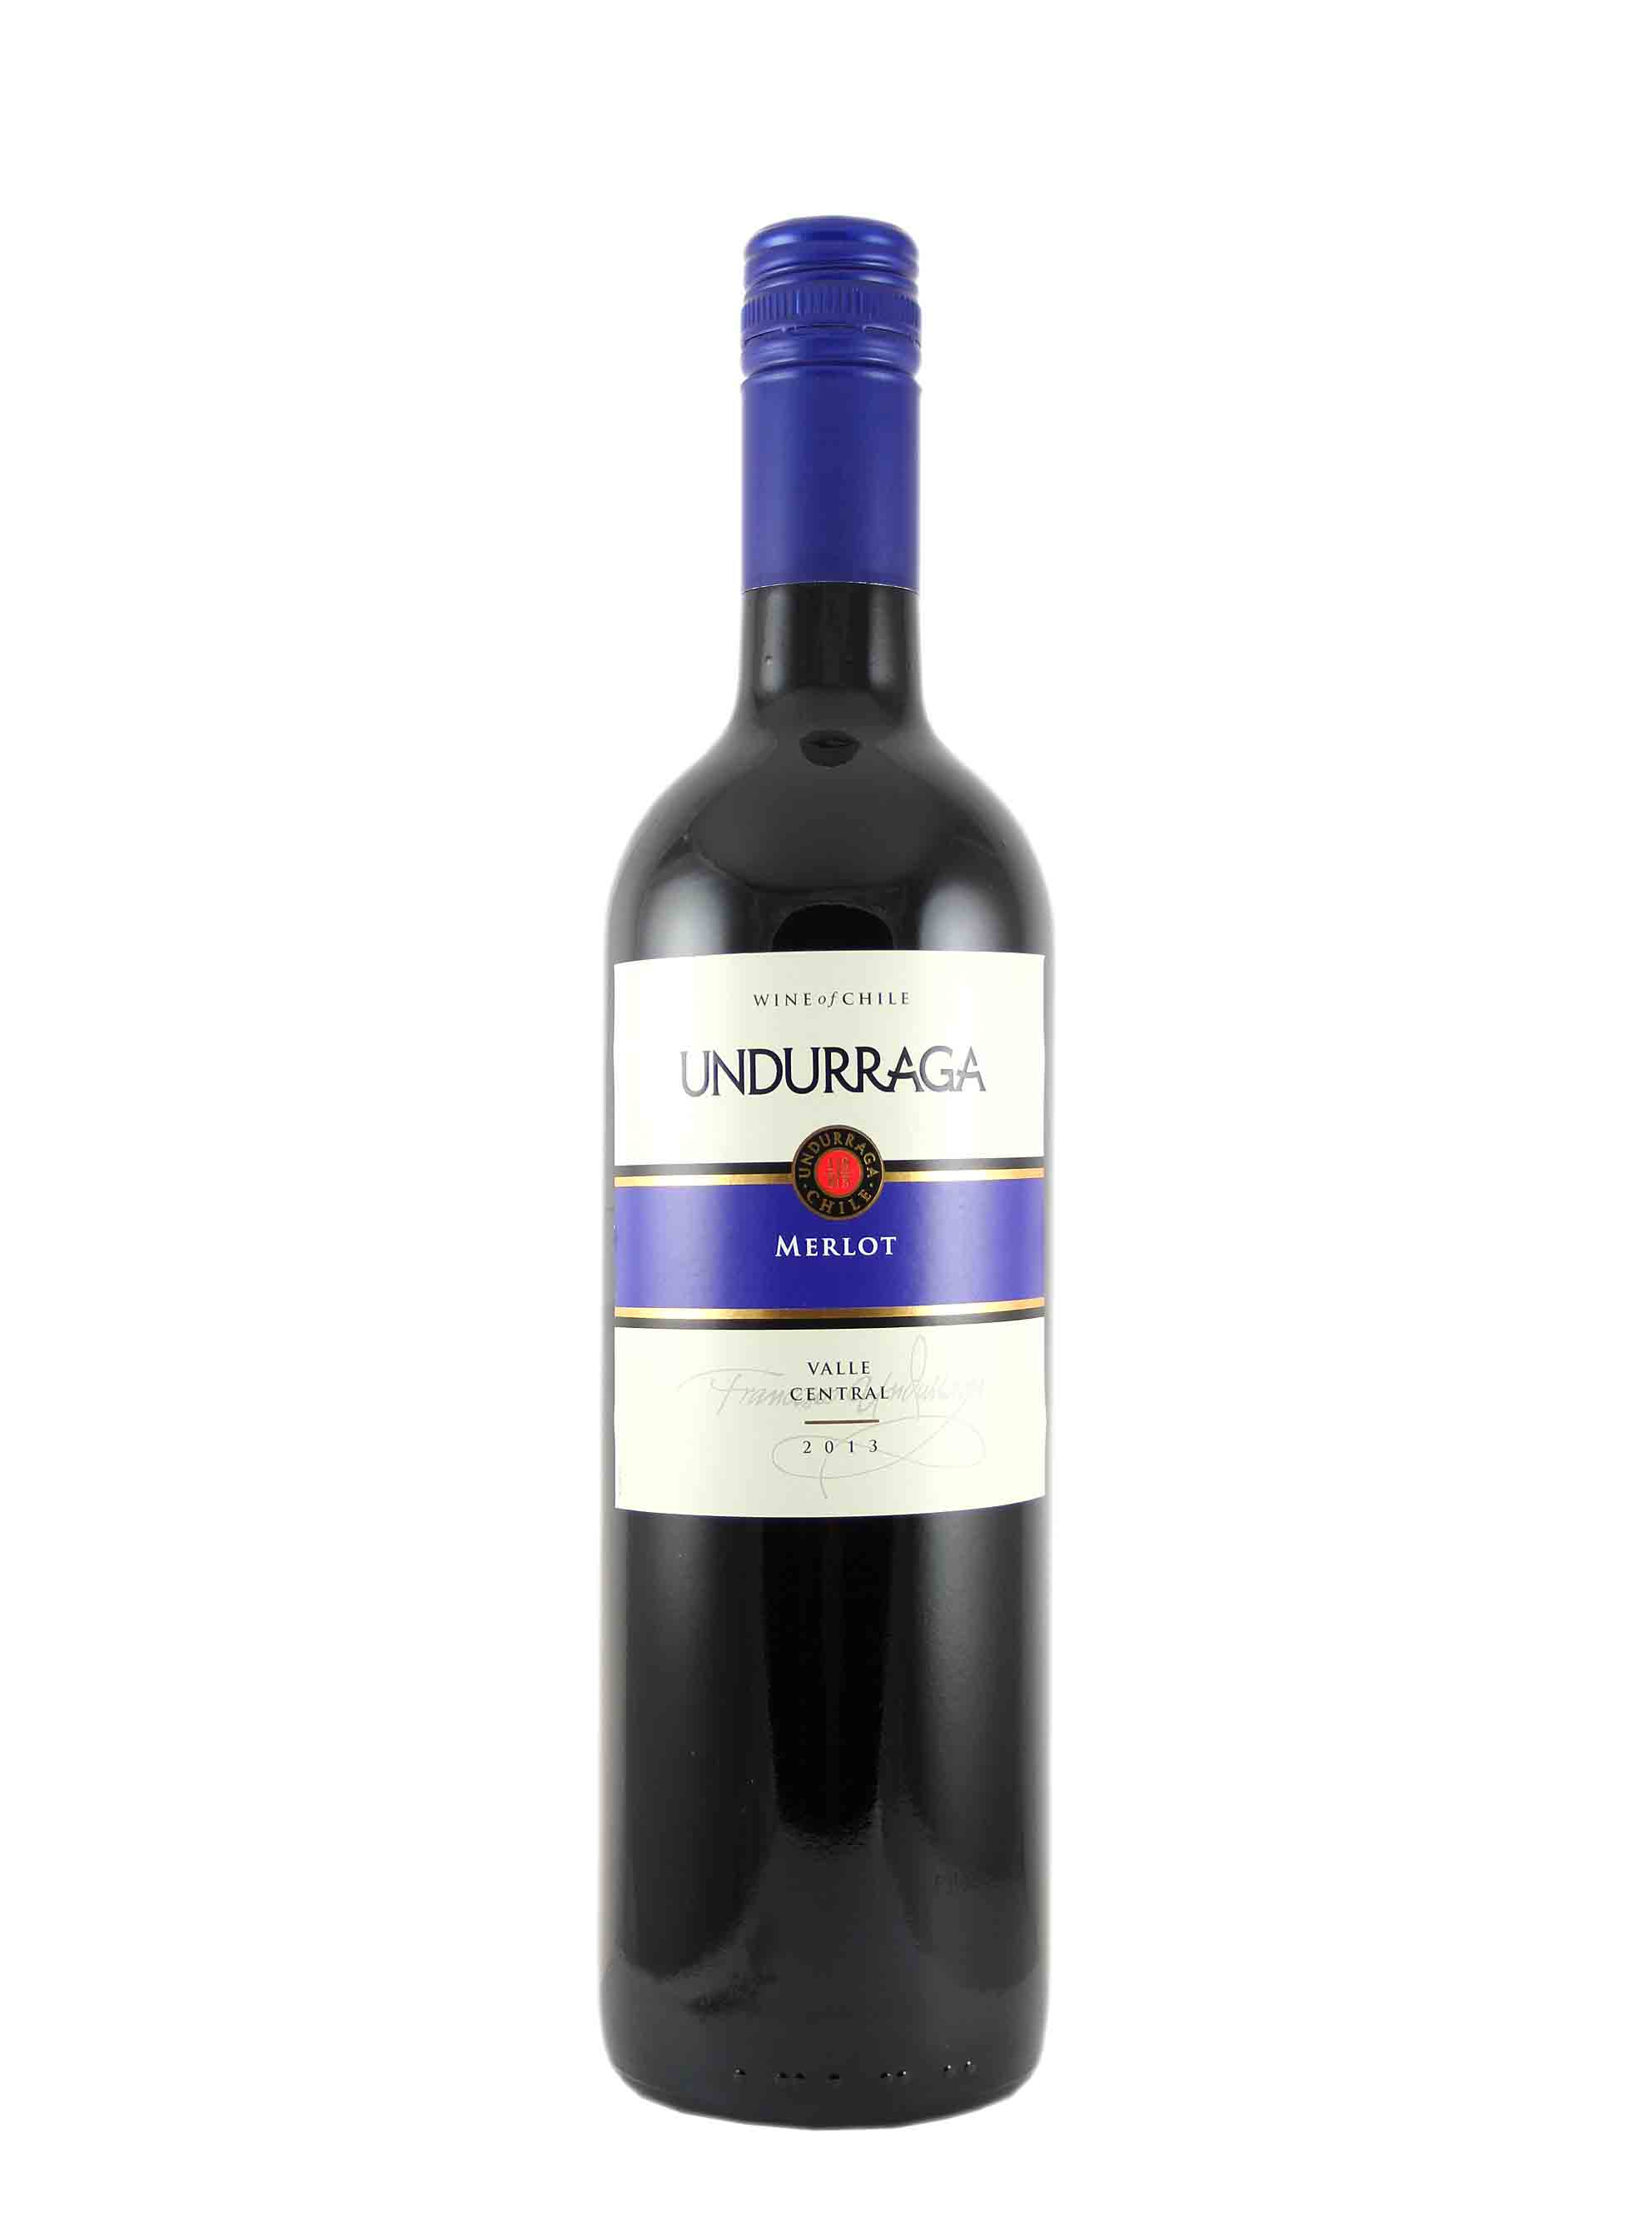 Merlot, Varietal Collection, 2013, Vina Undurraga, 0.75 l